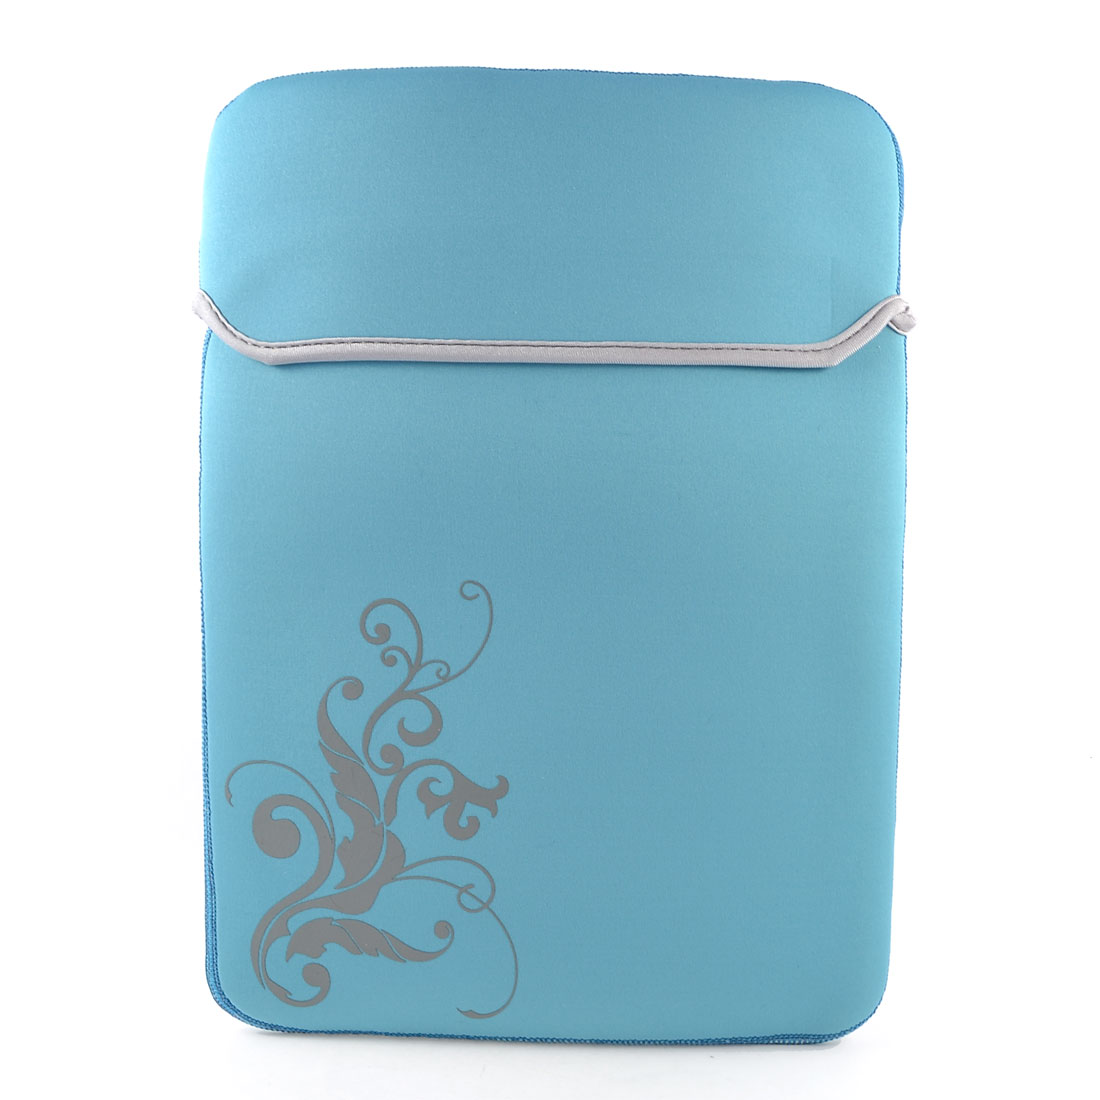 "14"" 14.1"" Laptop Computer Flower Sky Blue Neoprene Sleeve Bag Case Pouch"